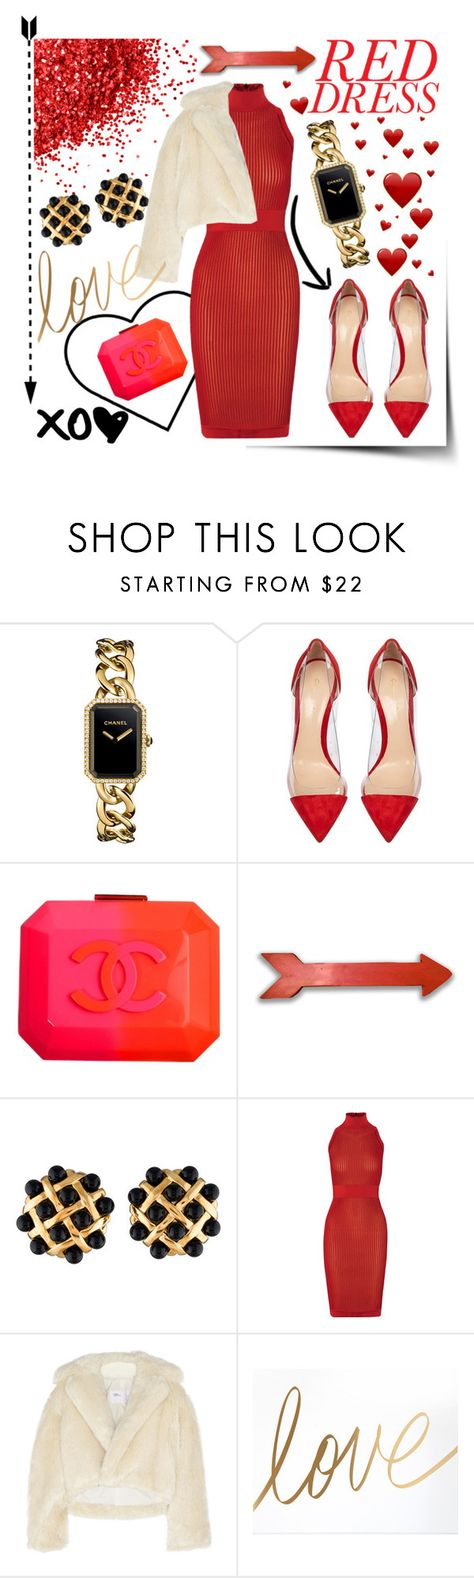 """Red Dress"" by mostincrediblebaby ❤ liked on Polyvore featuring Chanel, Gianvito Rossi, Balmain, Toga, women's clothing, women, female, woman, misses and juniors"